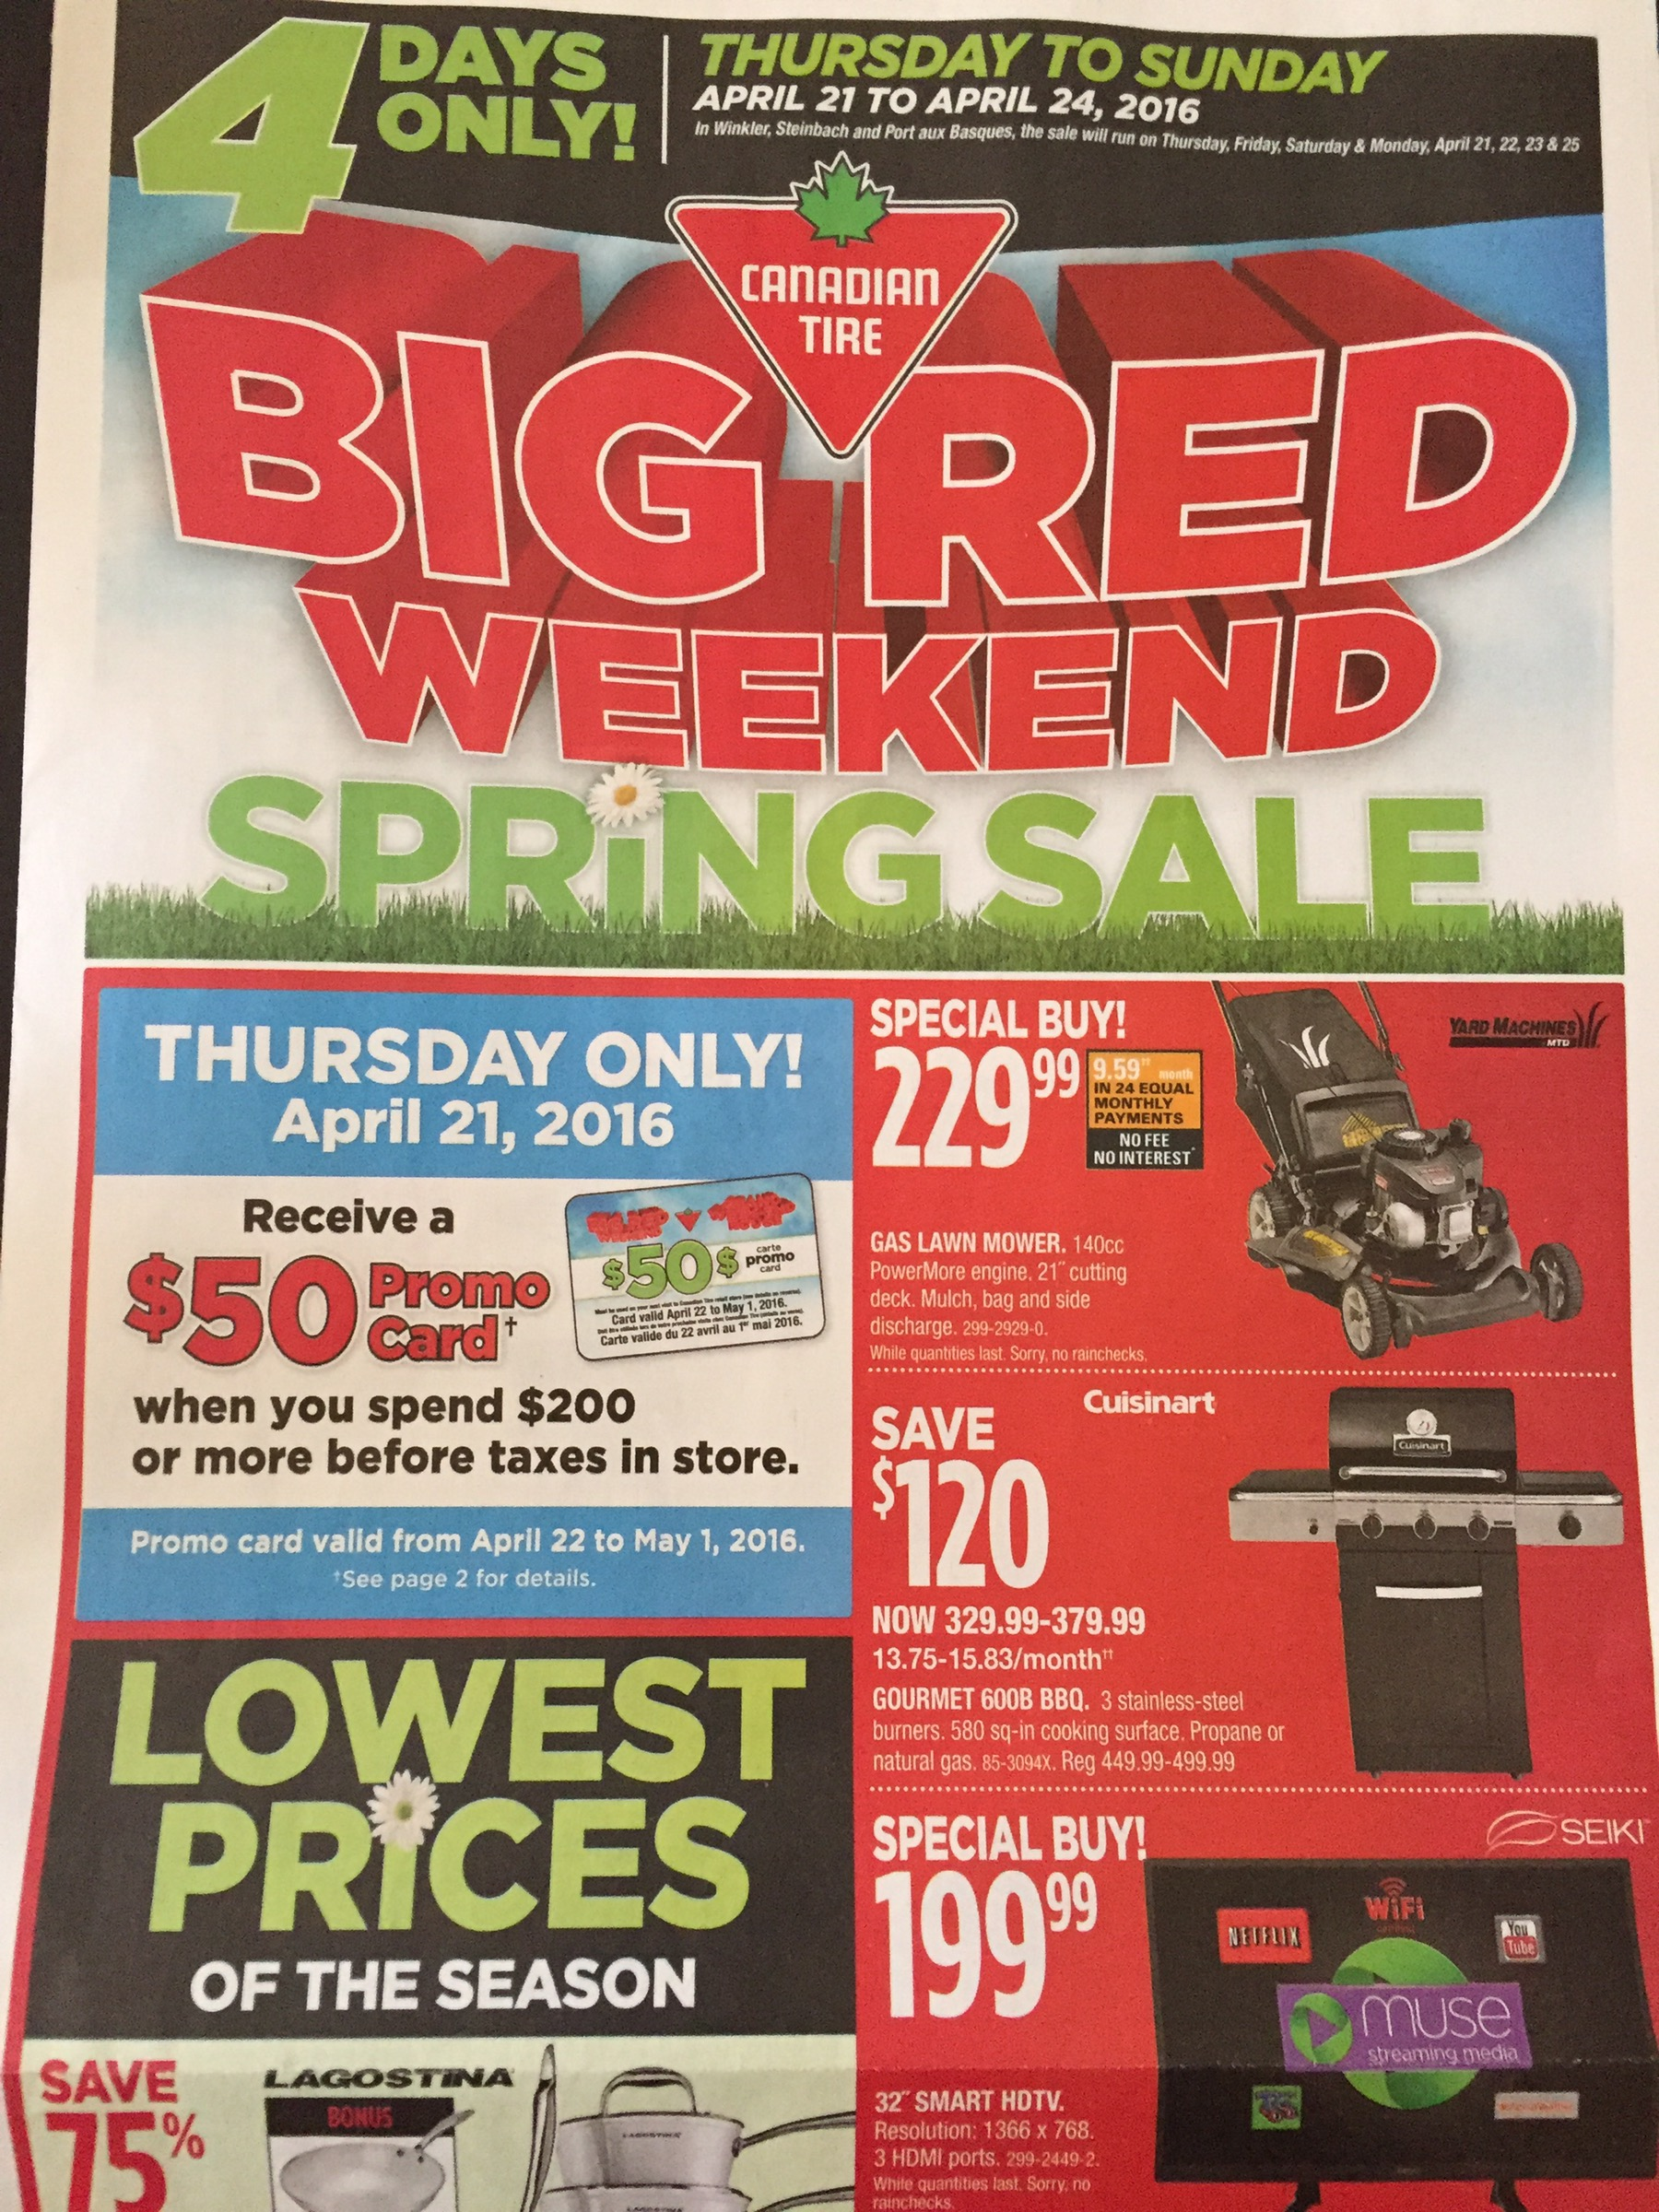 Canadian Tire Big Red Weekend Spring Sale April 21 24 Sweet Surprises